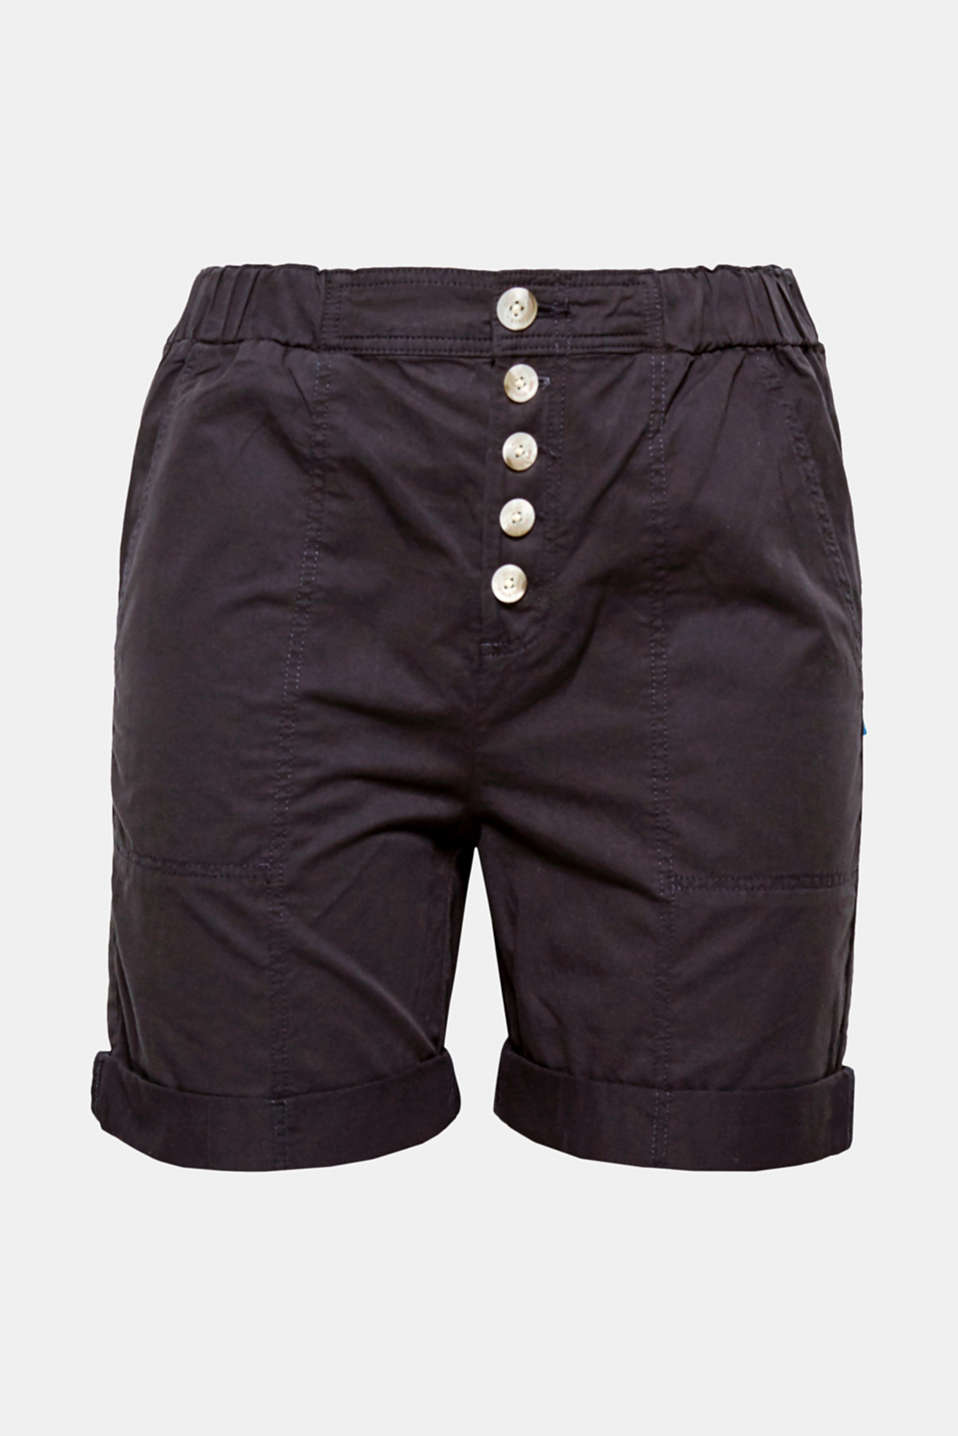 Your summer classic with a trendy button placket: sporty shorts in smooth cotton fabric.